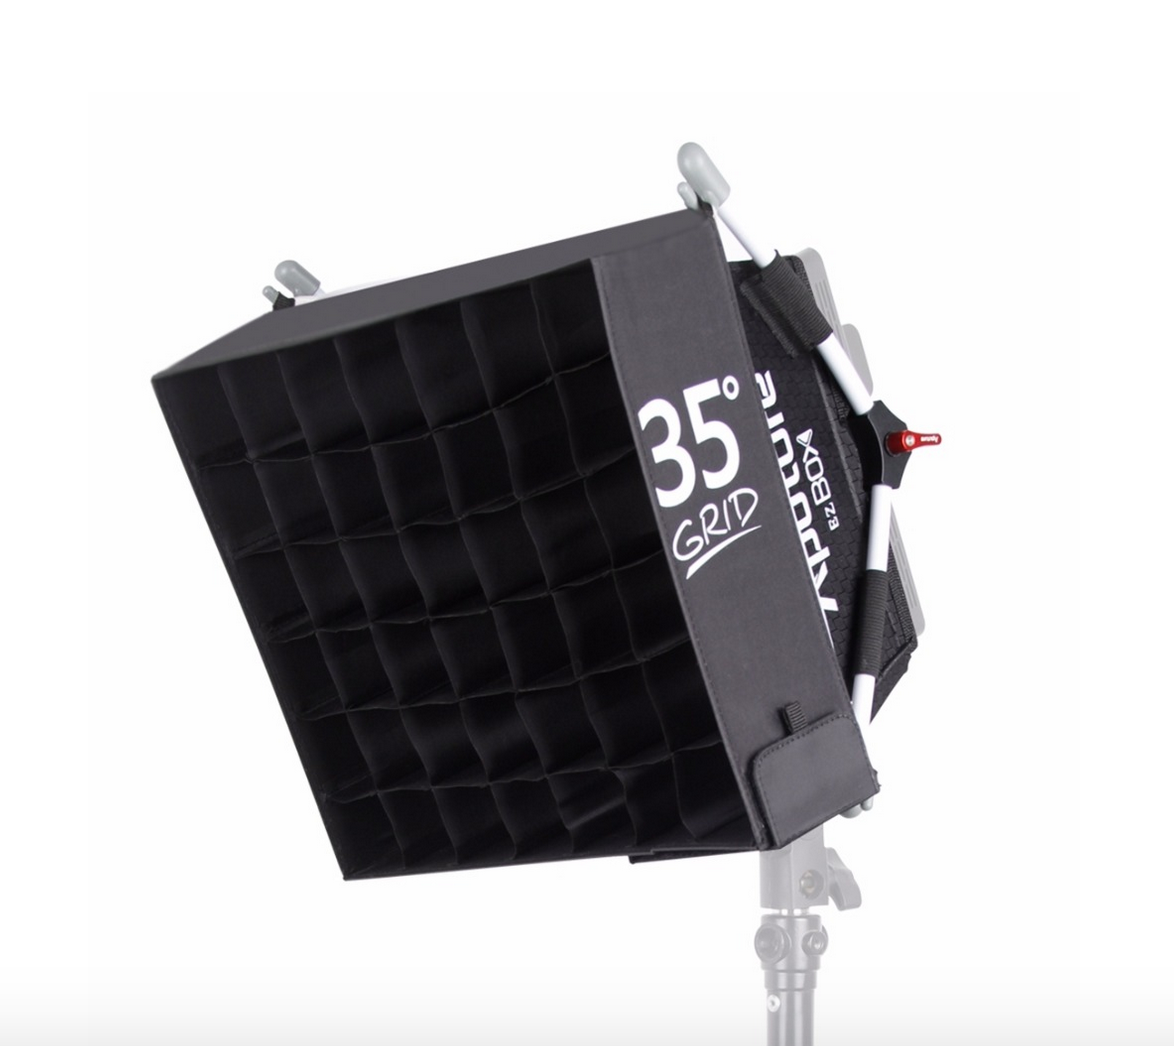 Aputure Softbox Ez Box+ II Light Modifiers Add Ons And Accessories